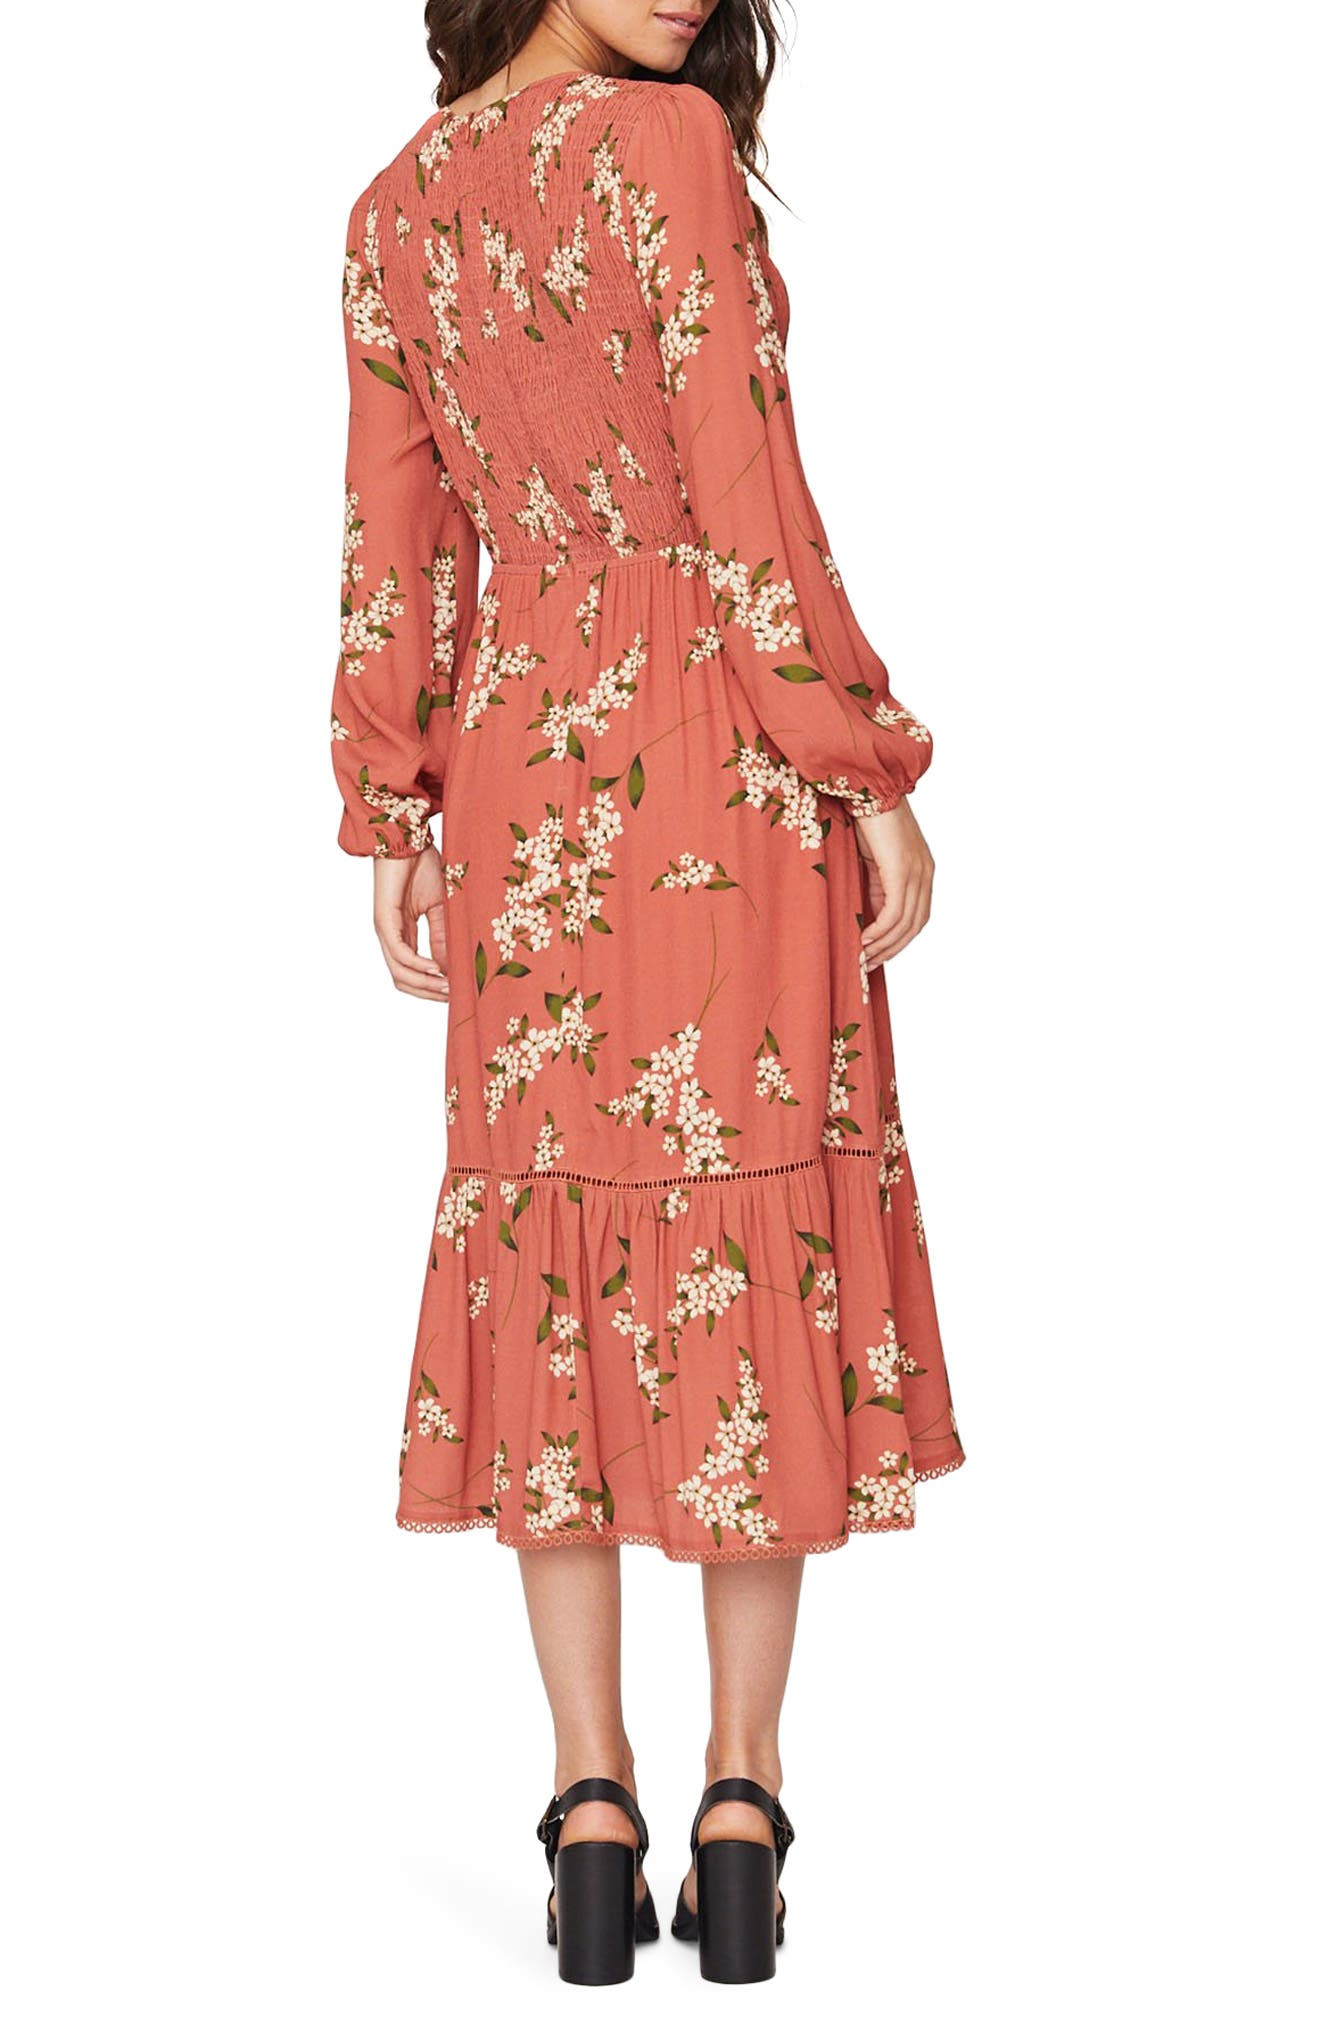 LOST + WANDER Champagne At the Palace Floral Smocked Long Sleeve Midi Dress